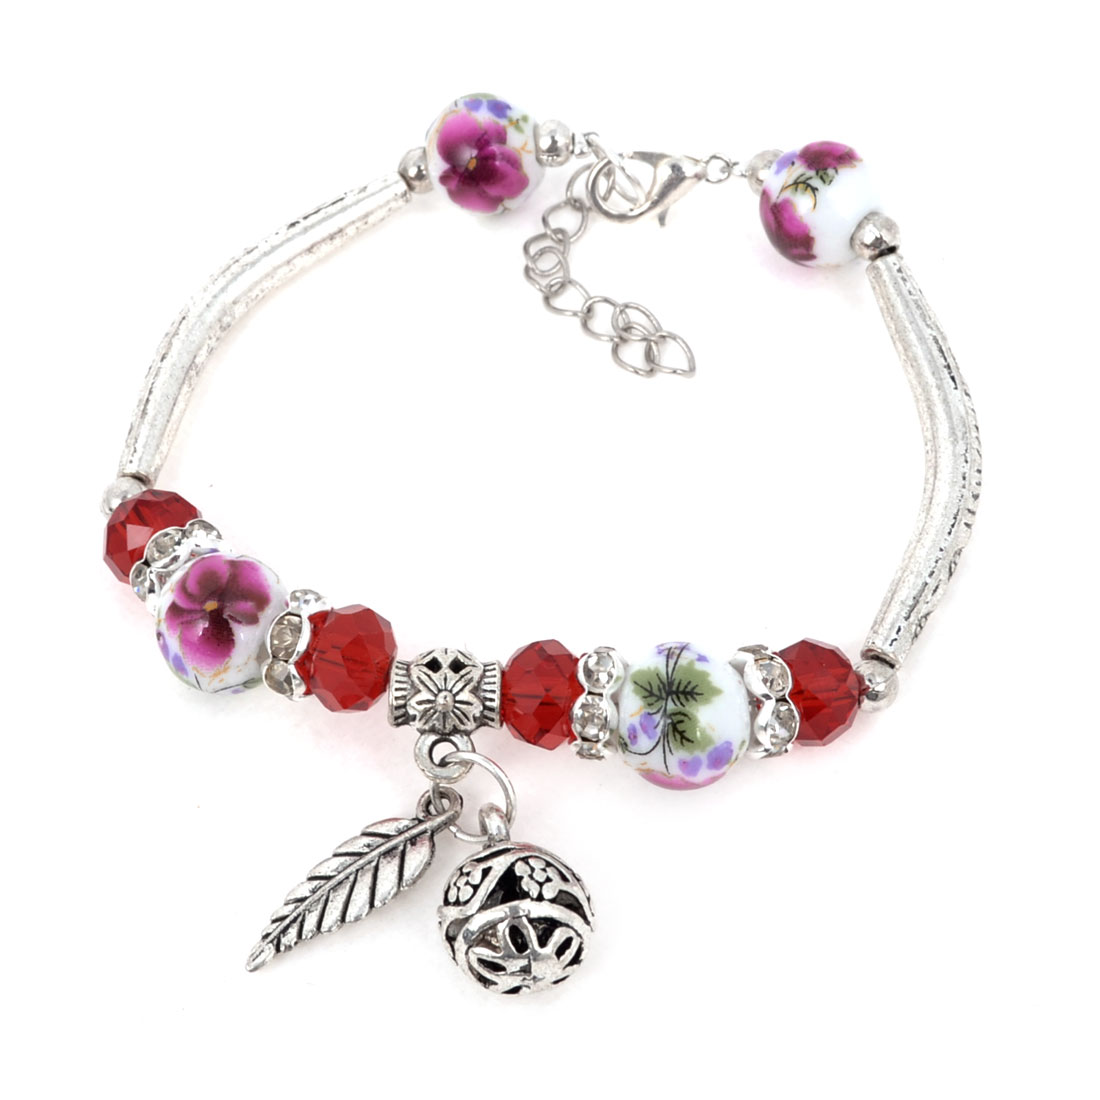 Retro Style Miao Sliver Wrist Decor Beads Linked Faux Crystal Bracelet for Lady